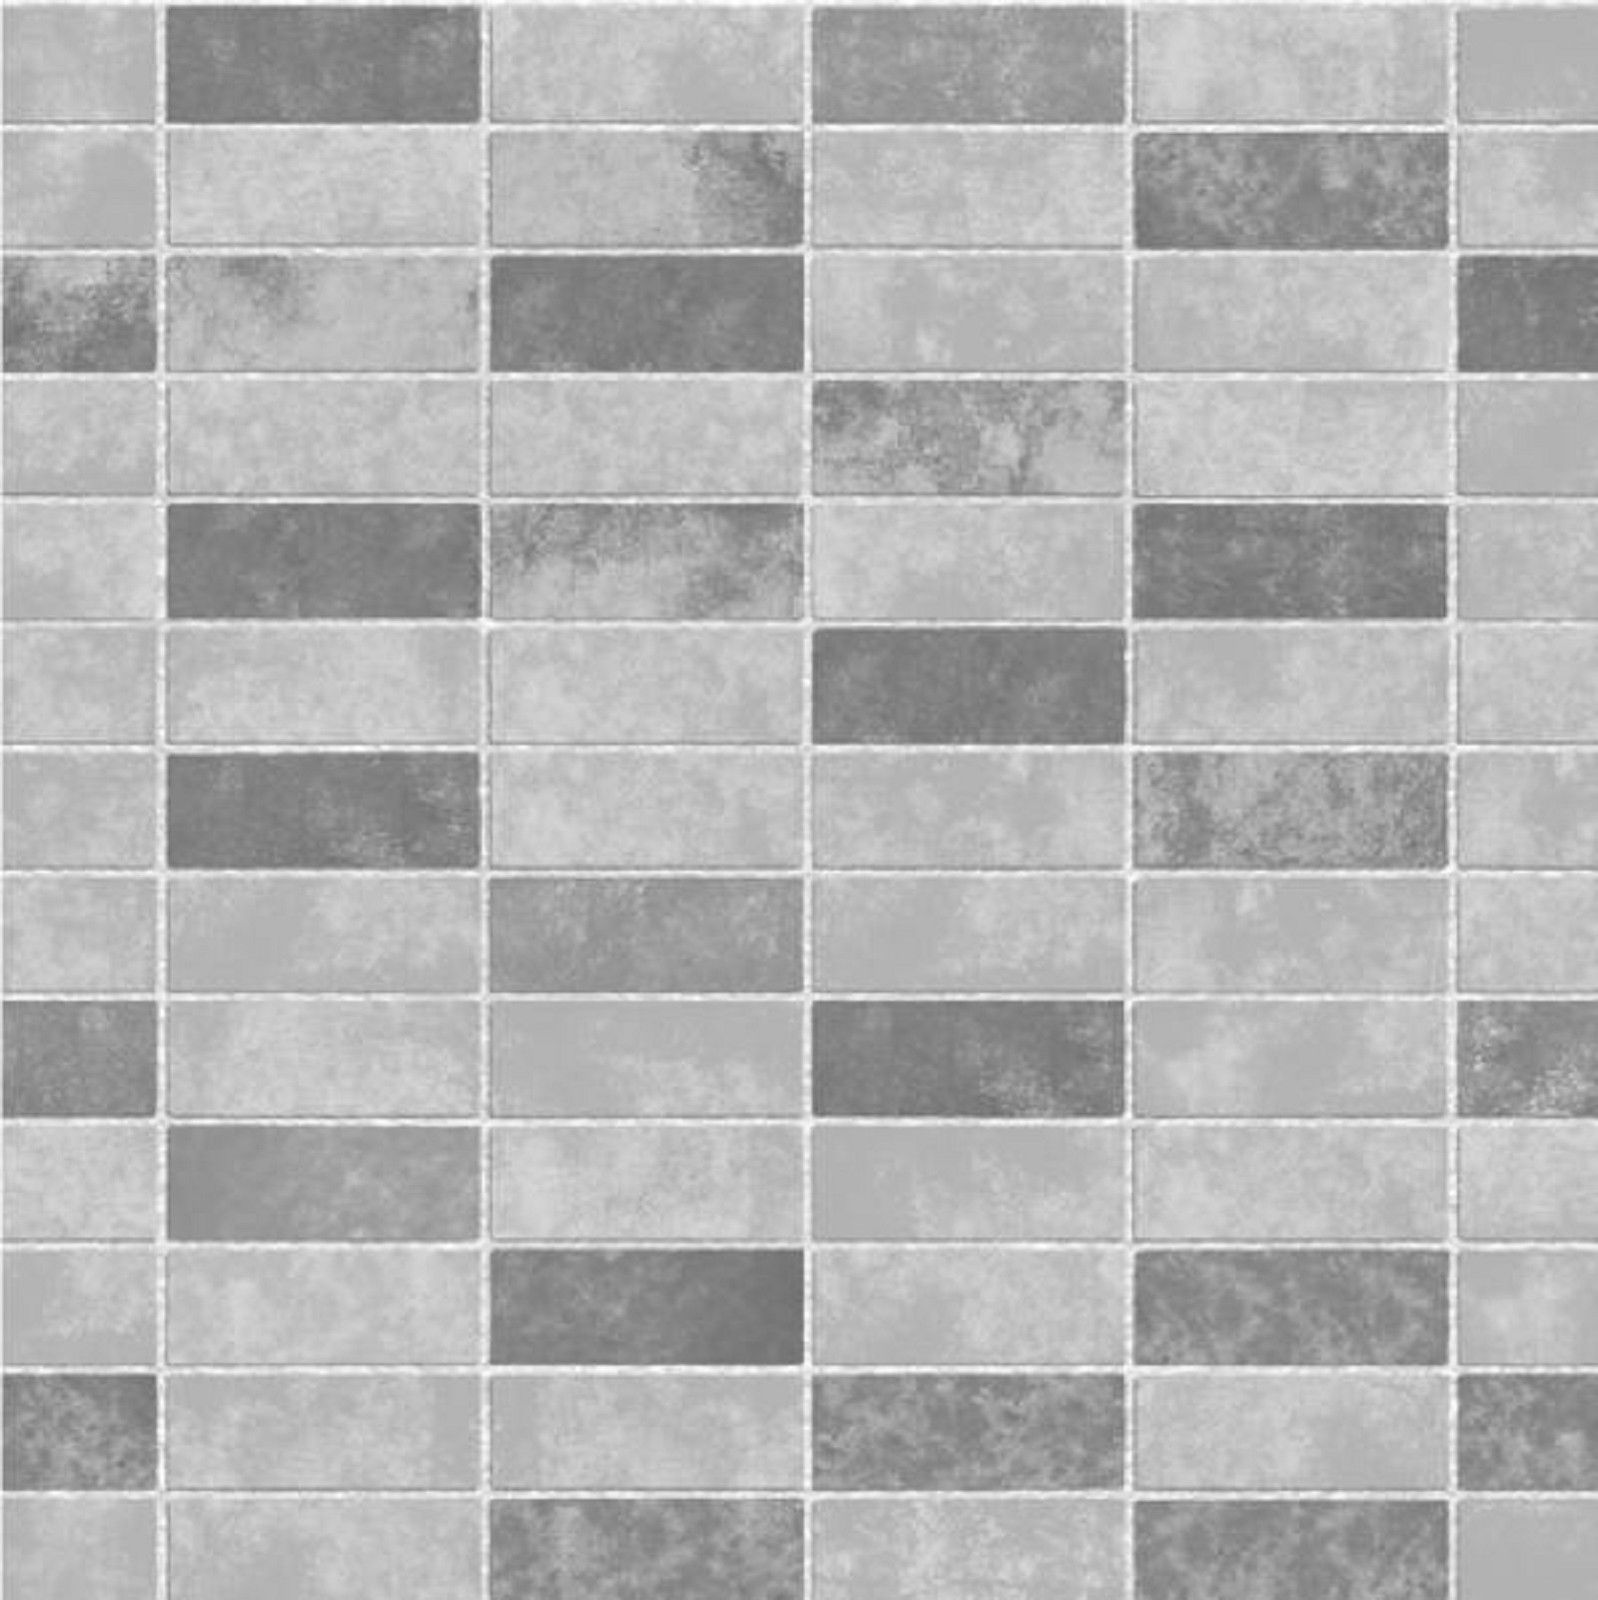 Bathroom Tiles Wallpaper latest posts under: bathroom wallpaper | ideas | pinterest | grey